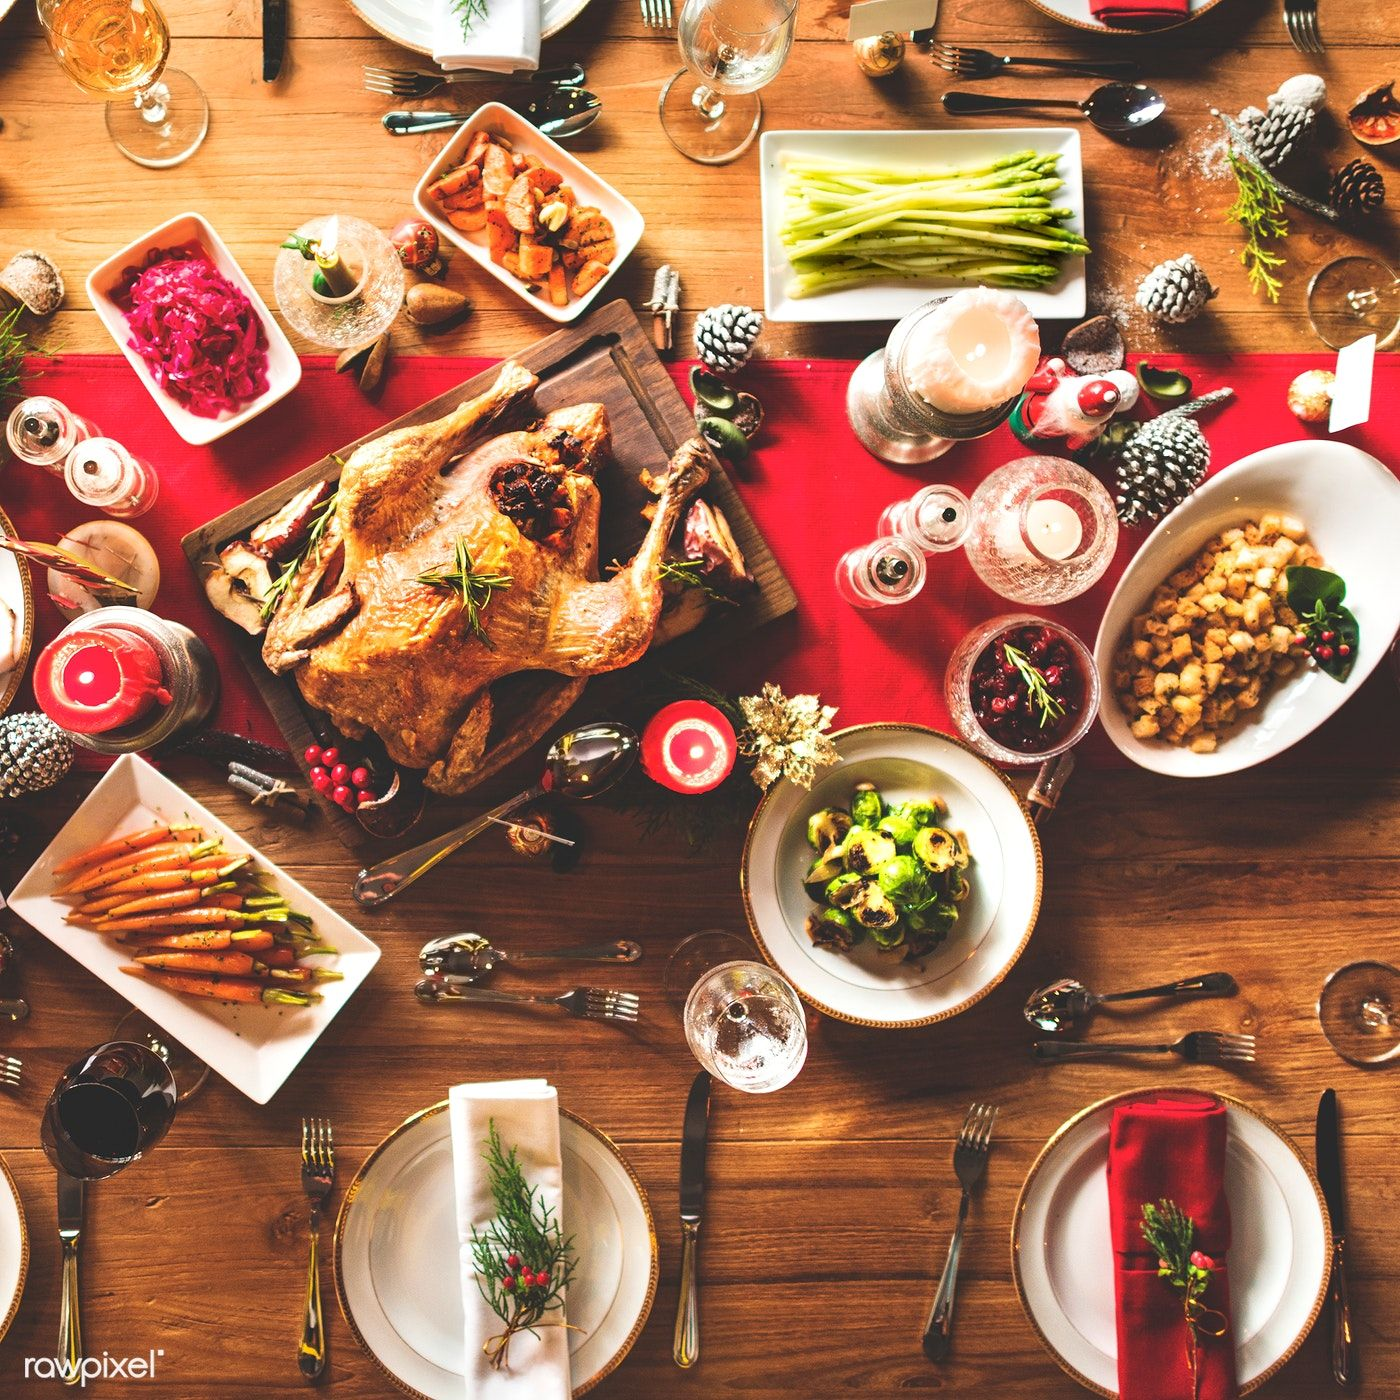 Download Premium Image Of Aerial View Of A Table Full Of